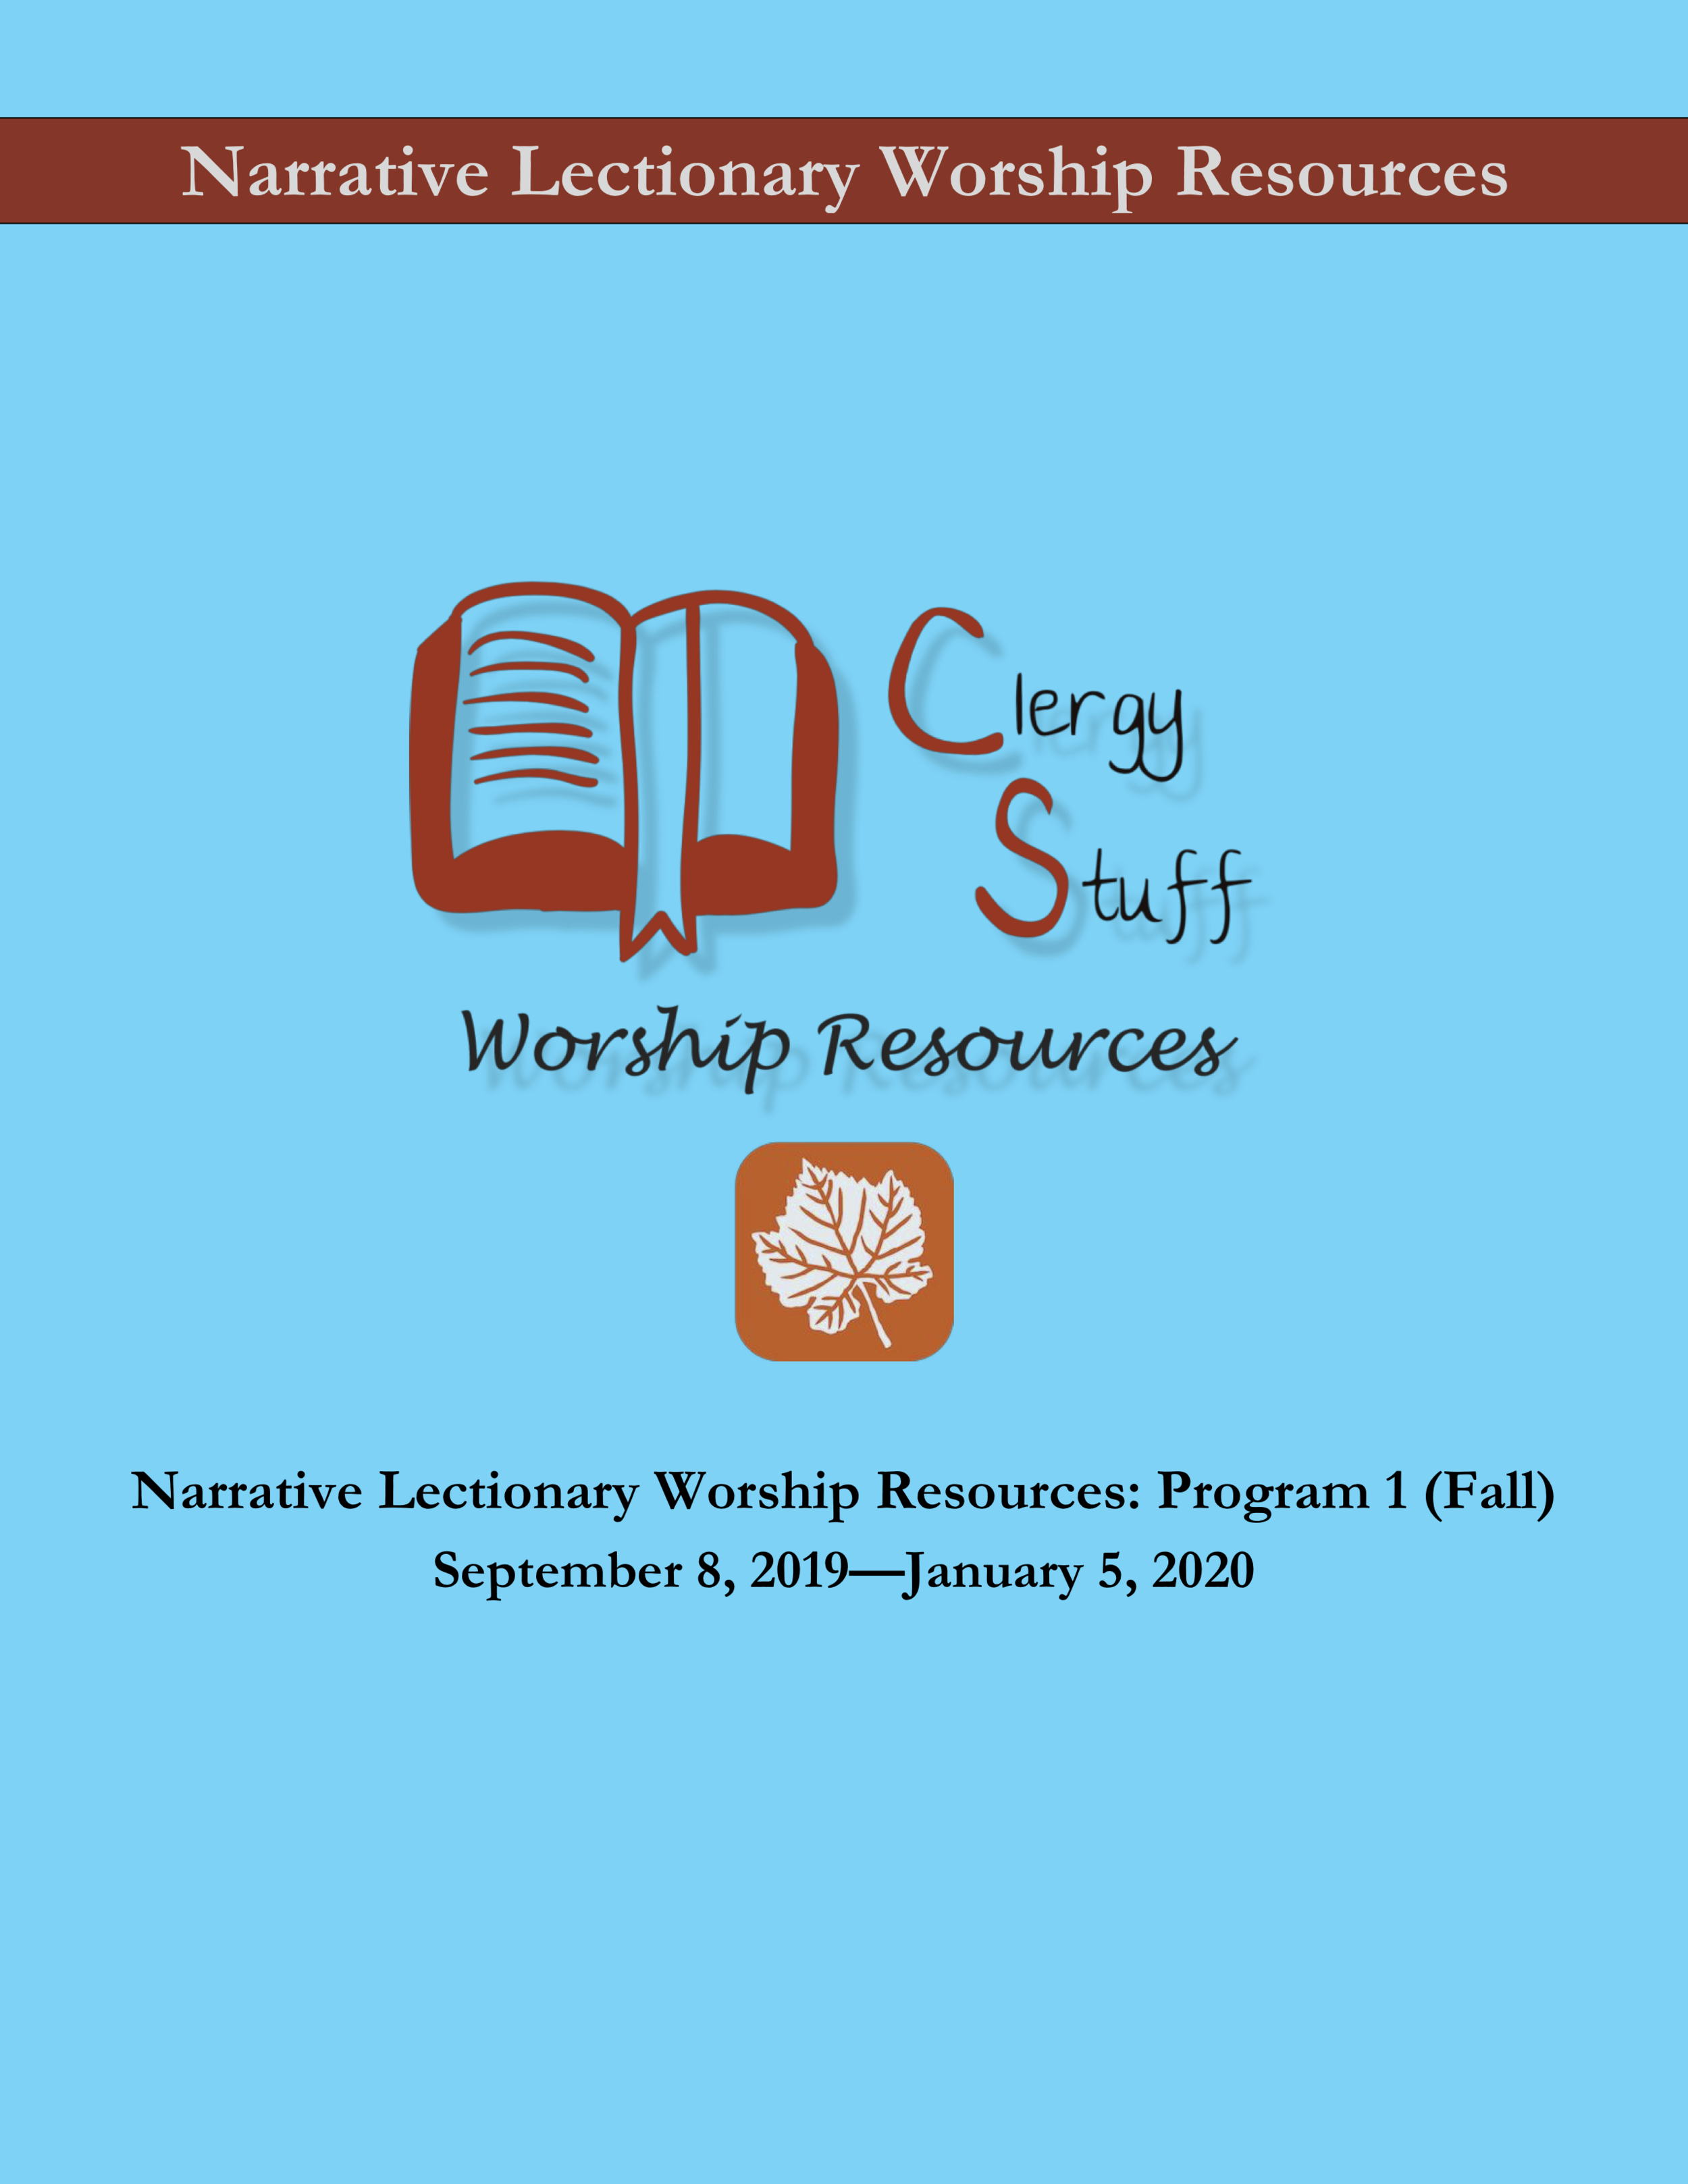 2019-20 program 1 worship resources NL copy (dragged) 01.png